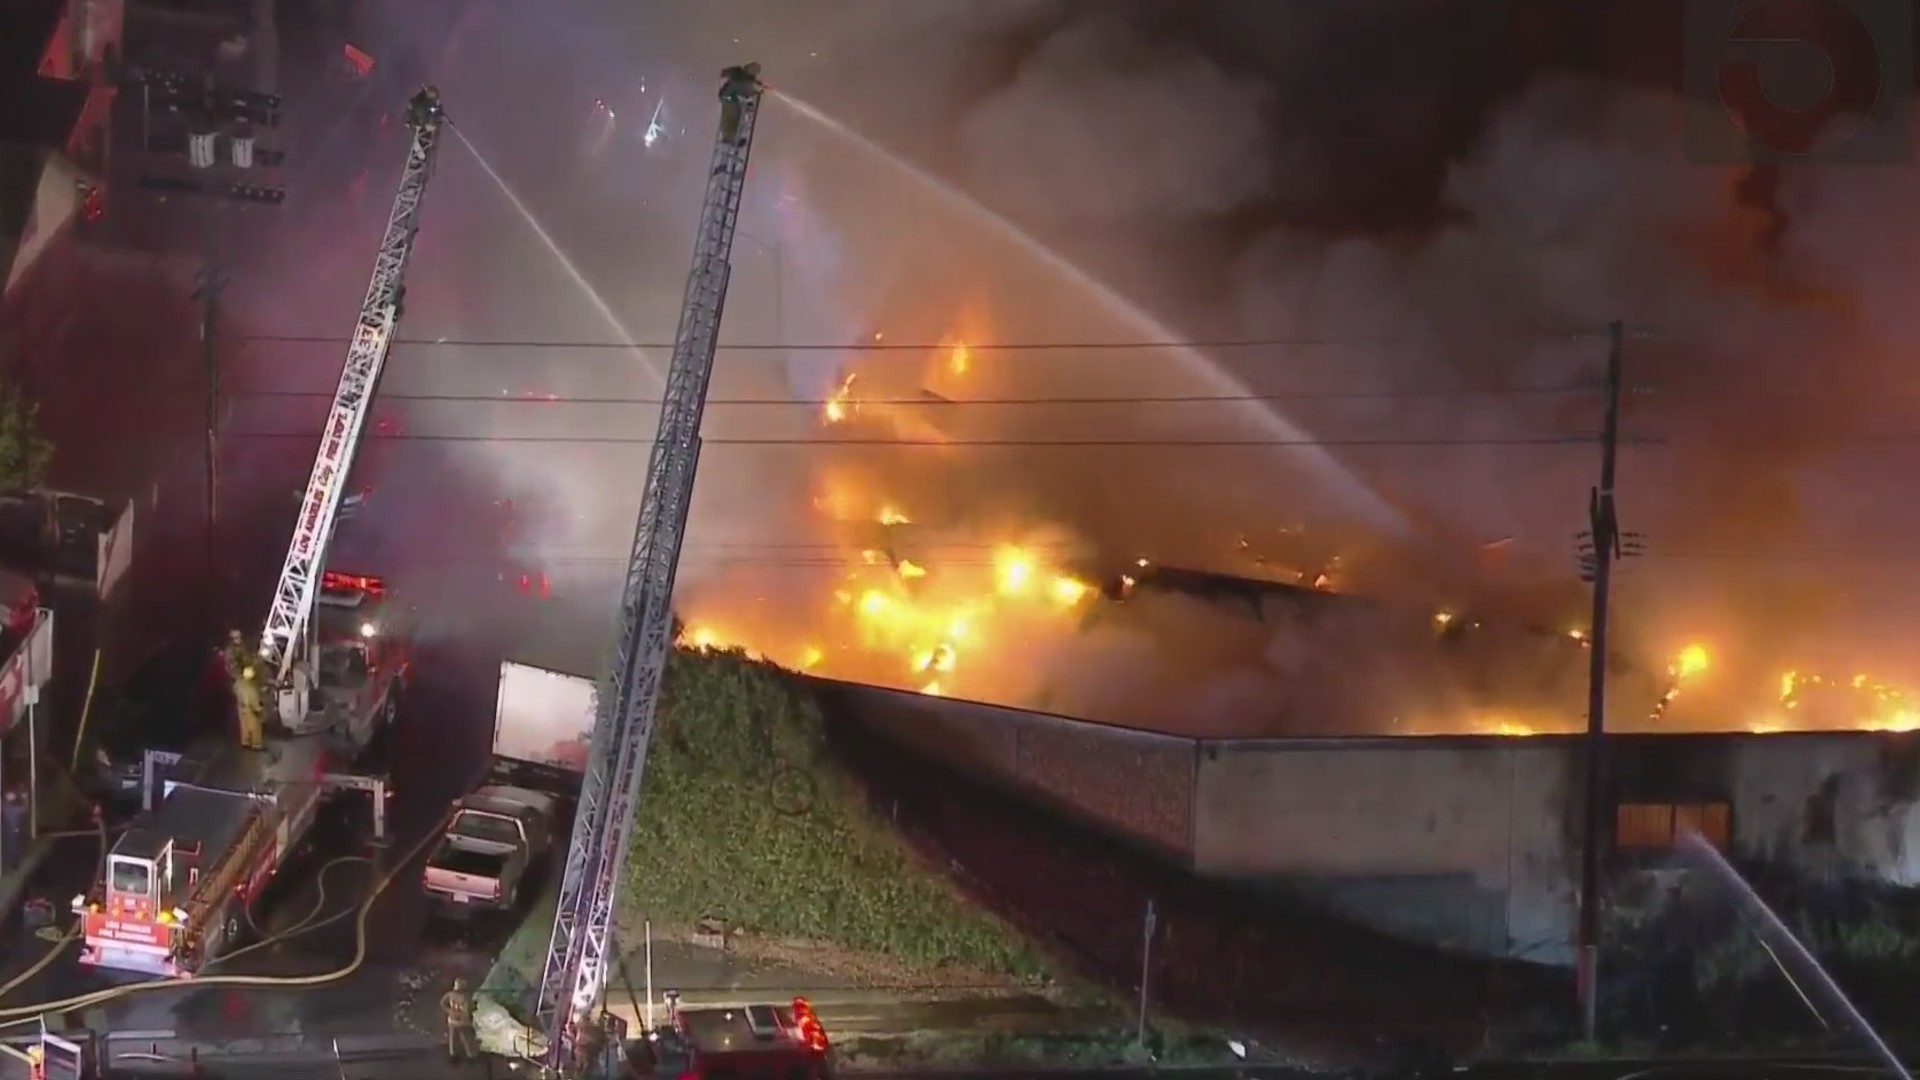 Fire crews respond to a blaze in South Los Angeles on March 2, 2021. (KTLA)